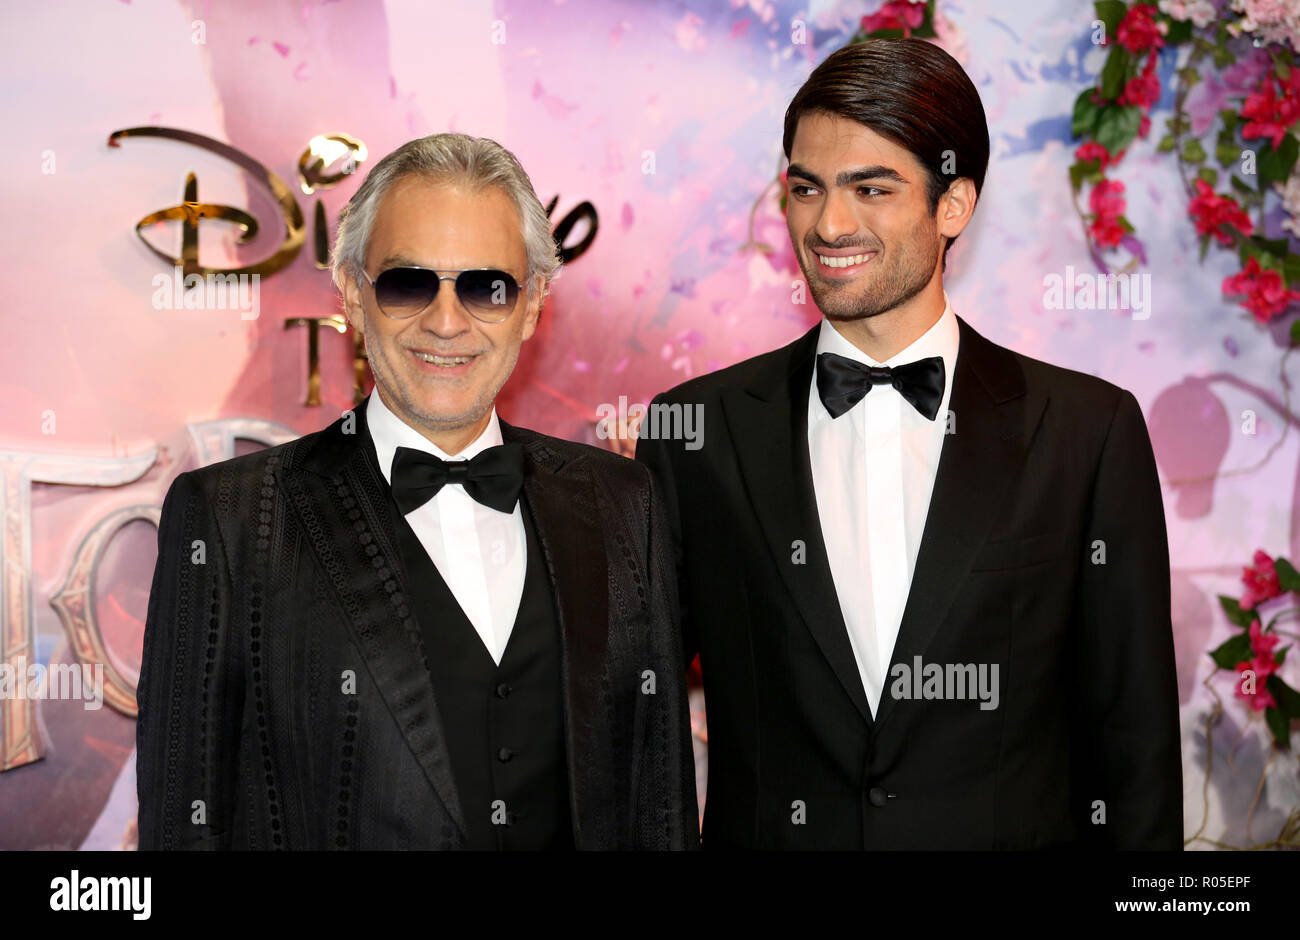 Andrea Bocelli (left) and Matteo Bocelli attending the European Premiere of The Nutcracker and the Four Realms held at the Vue, Westfield London. - Stock Image